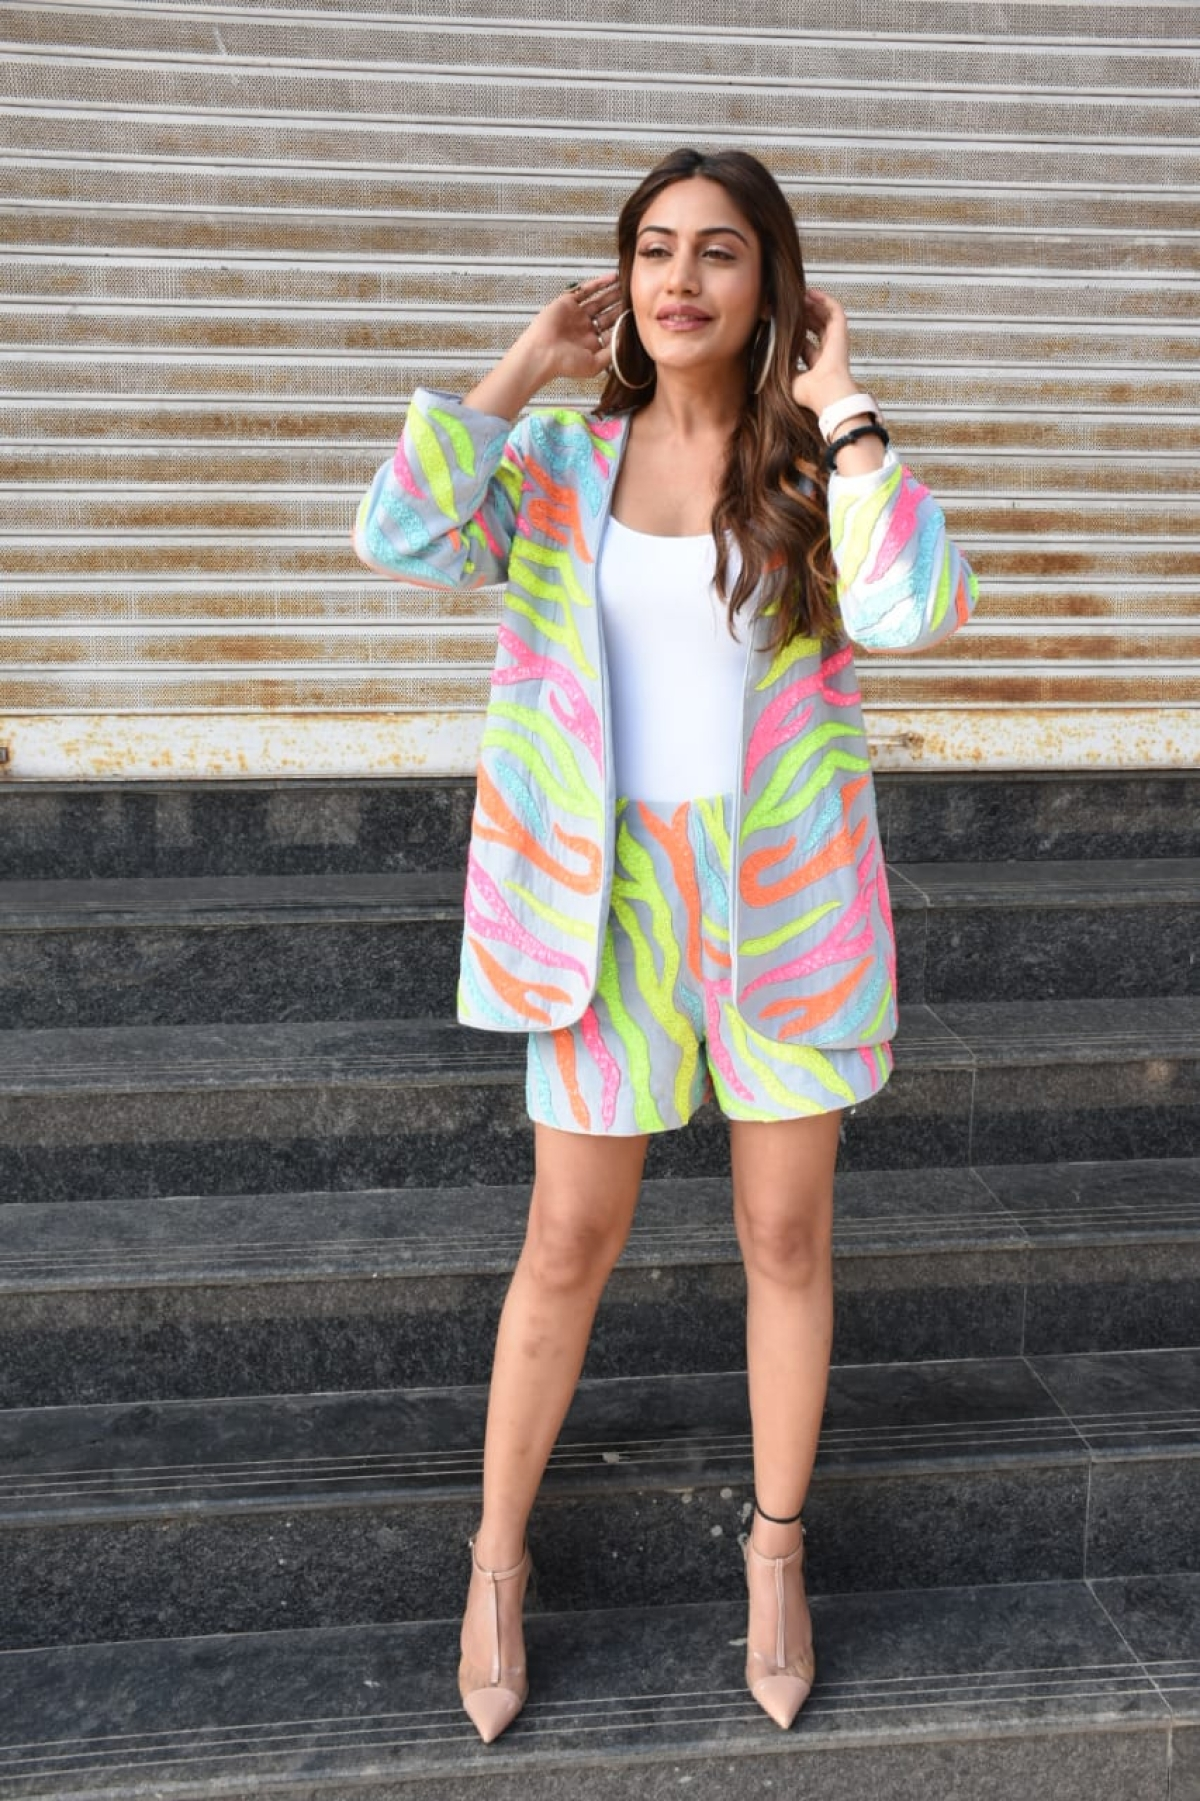 Ranveer Singh, Deepika Padukone, Janhvi Kapoor, Sunny Leone & others, show how to jazz up your everyday look with stylish jackets